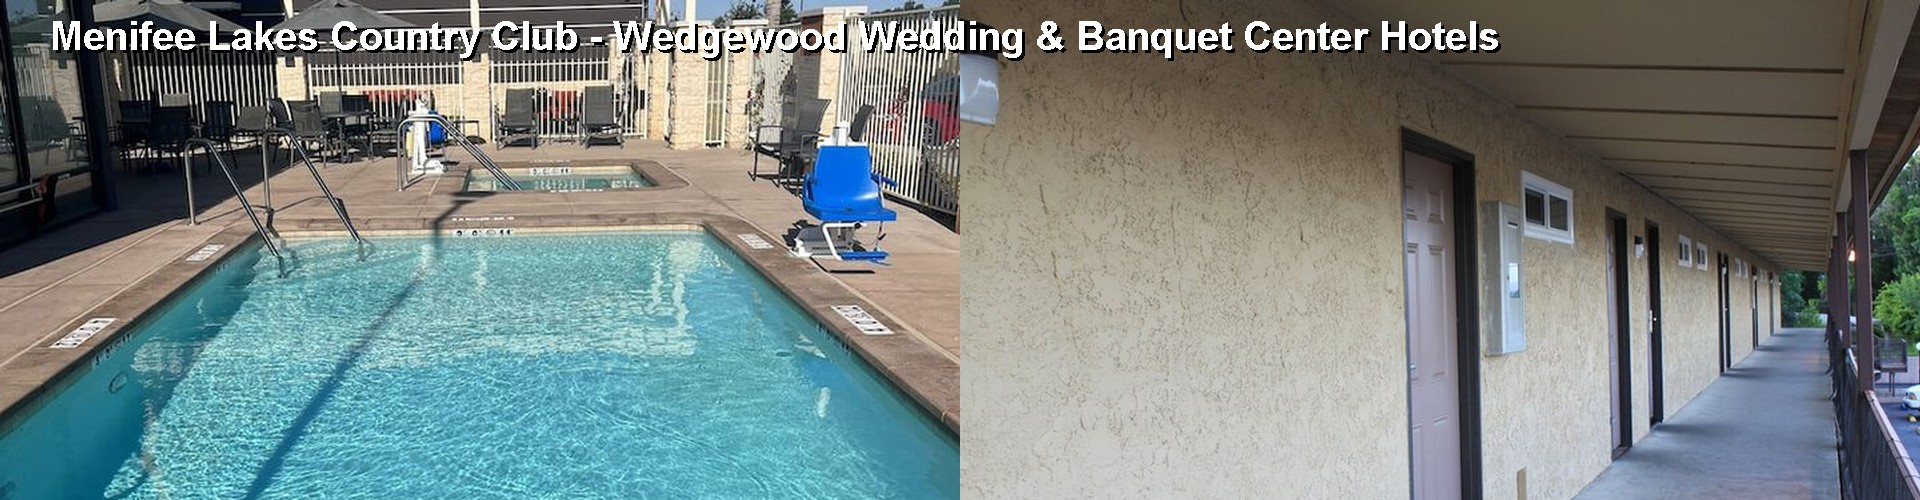 5 Best Hotels near Menifee Lakes Country Club - Wedgewood Wedding & Banquet Center